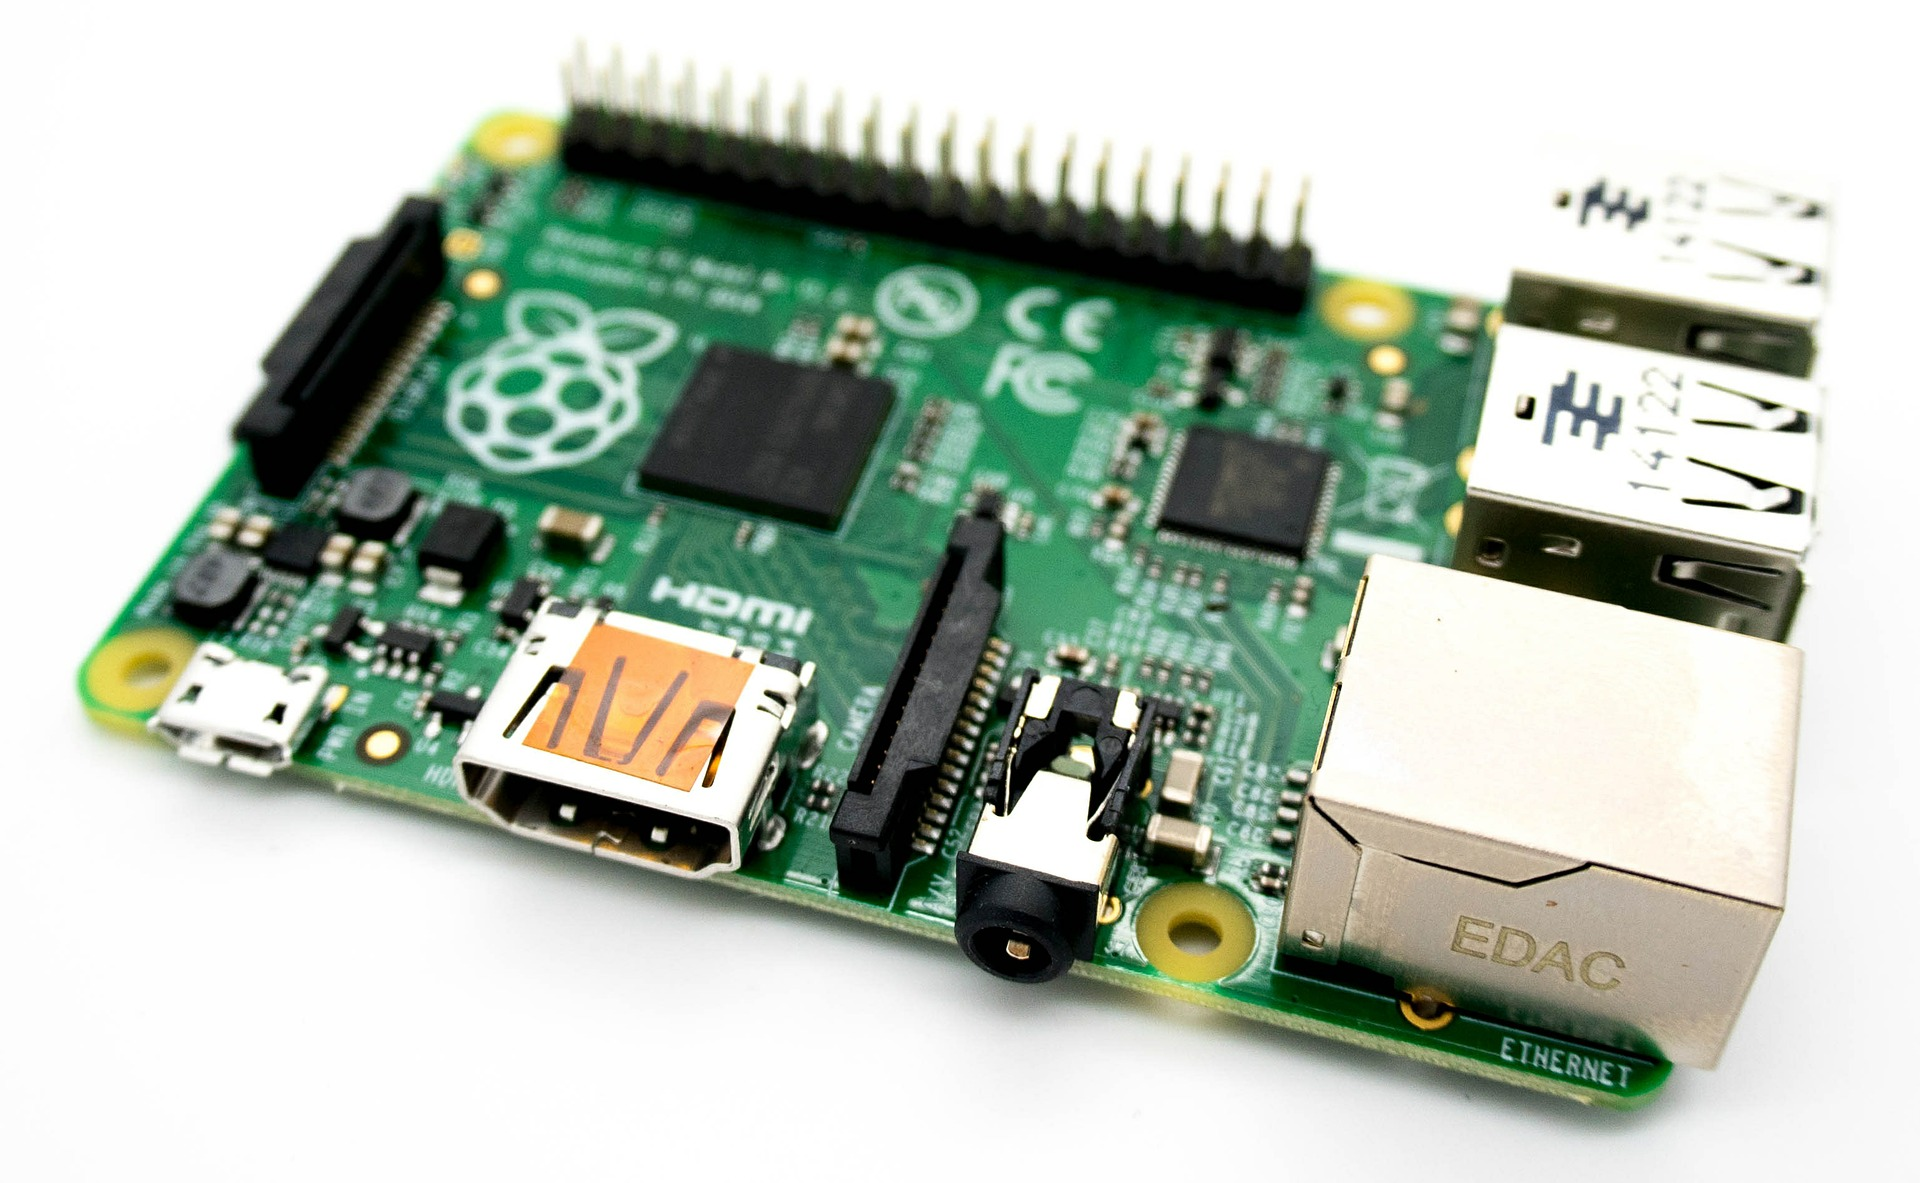 It's almost too easy with a Raspberry Pi